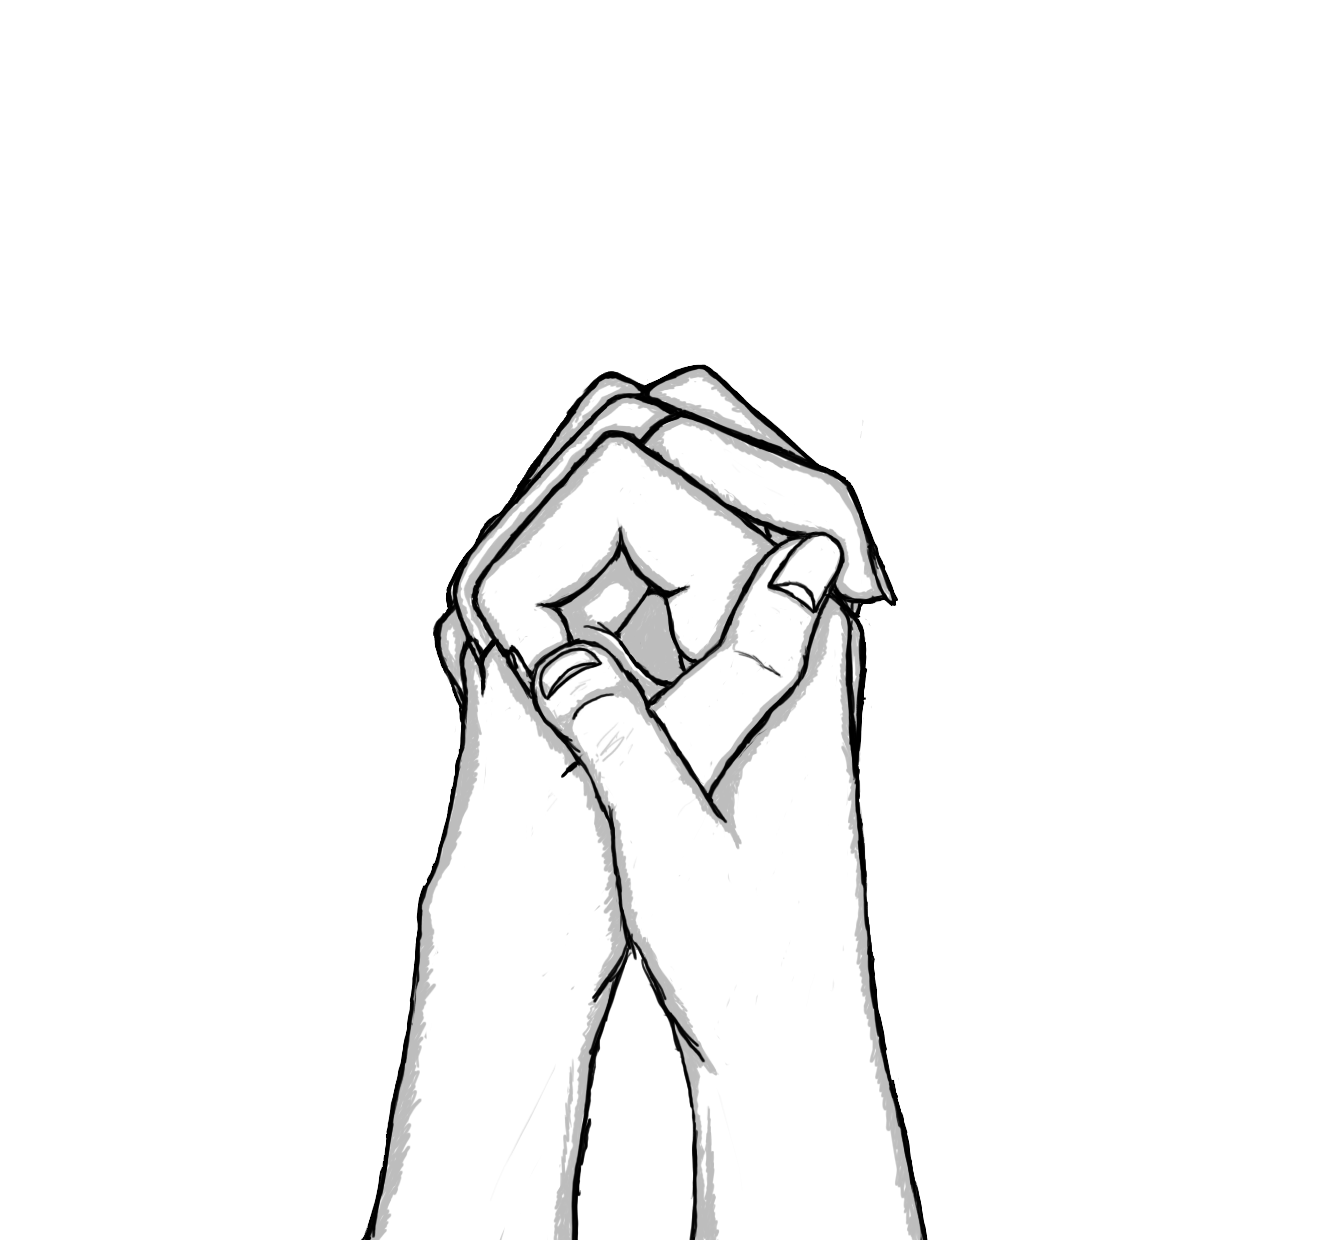 Drawings of People in Love | holding hands 2 by pspleo digital art drawings  people 2010 - PNG Holding Hands